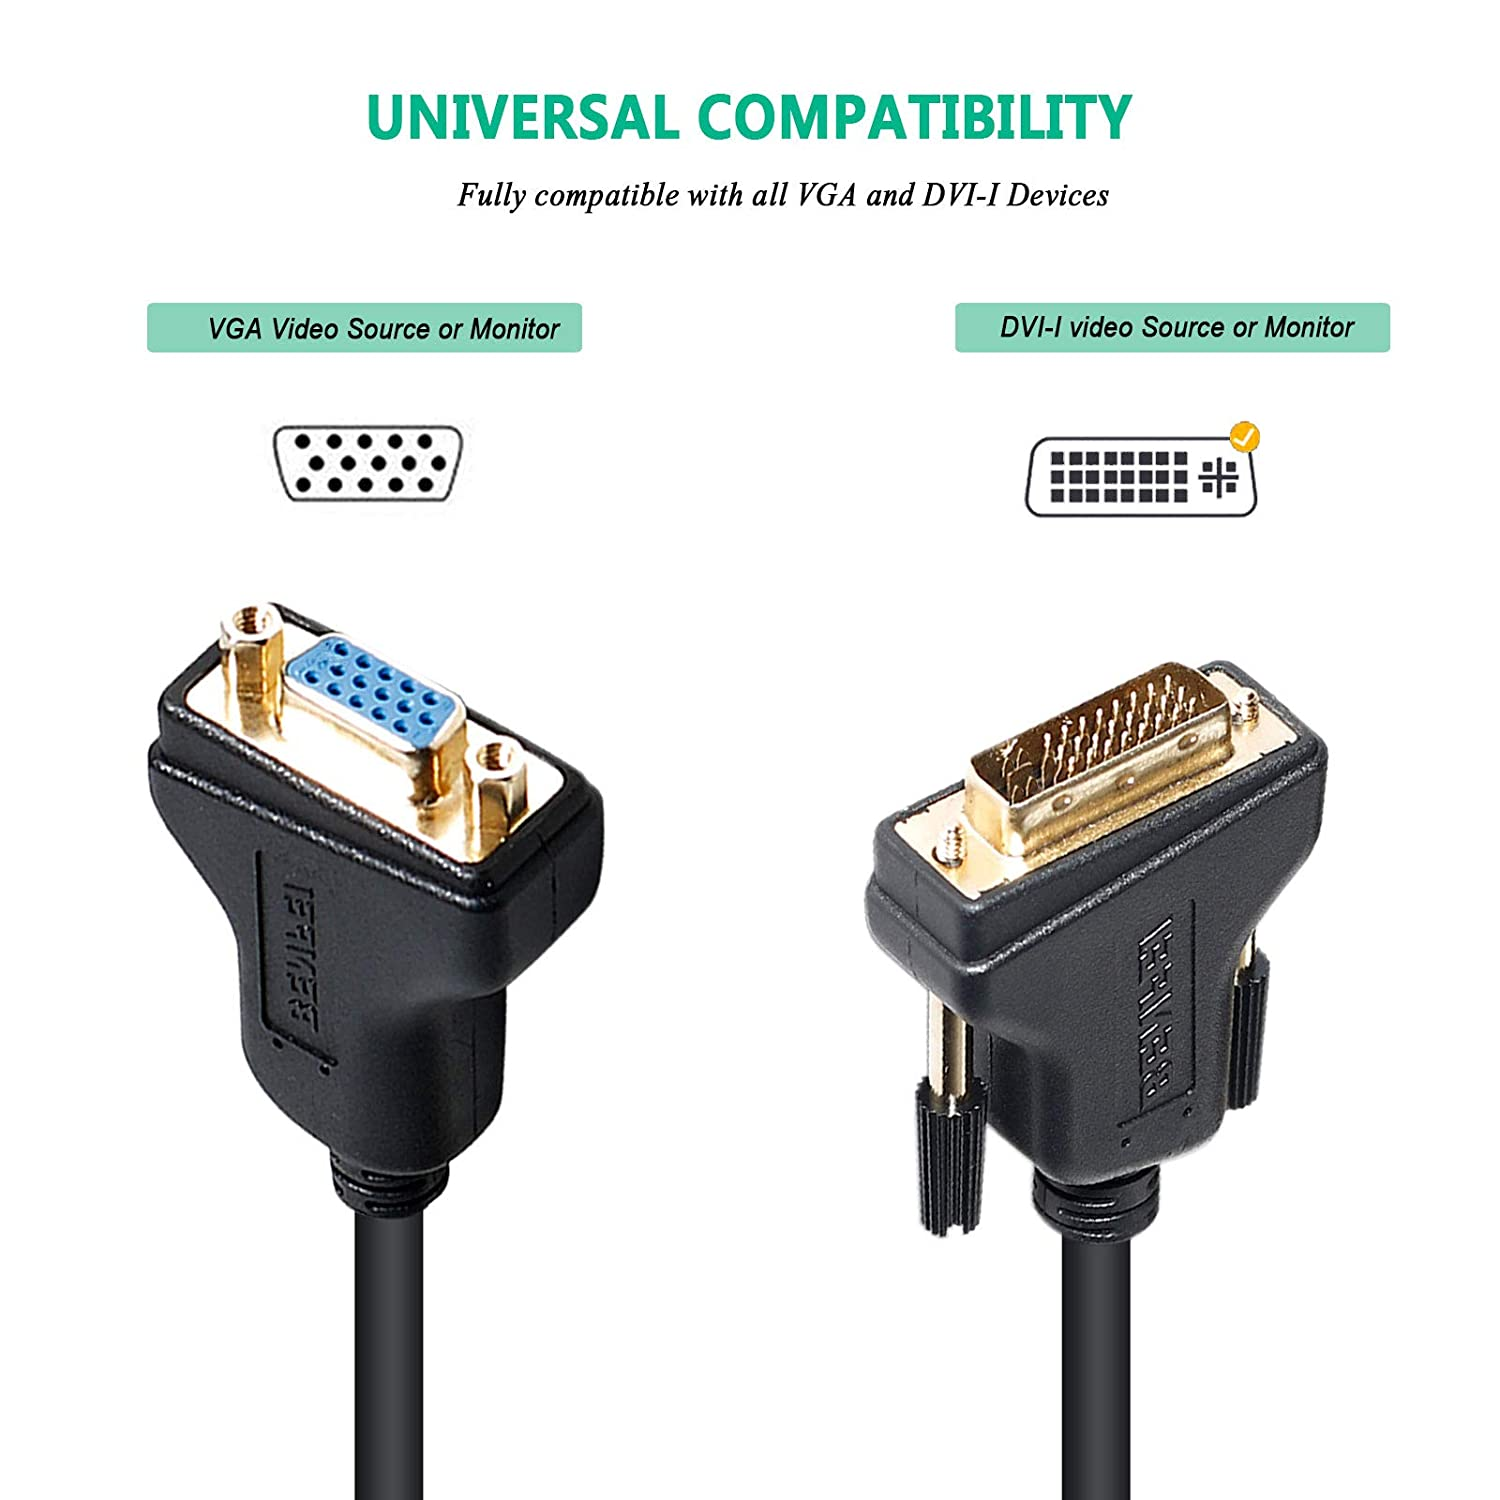 Benfei DVI 24+5 to VGA Male to Female Adapter with Gold Plated Cord DVI-I to VGA Adapter